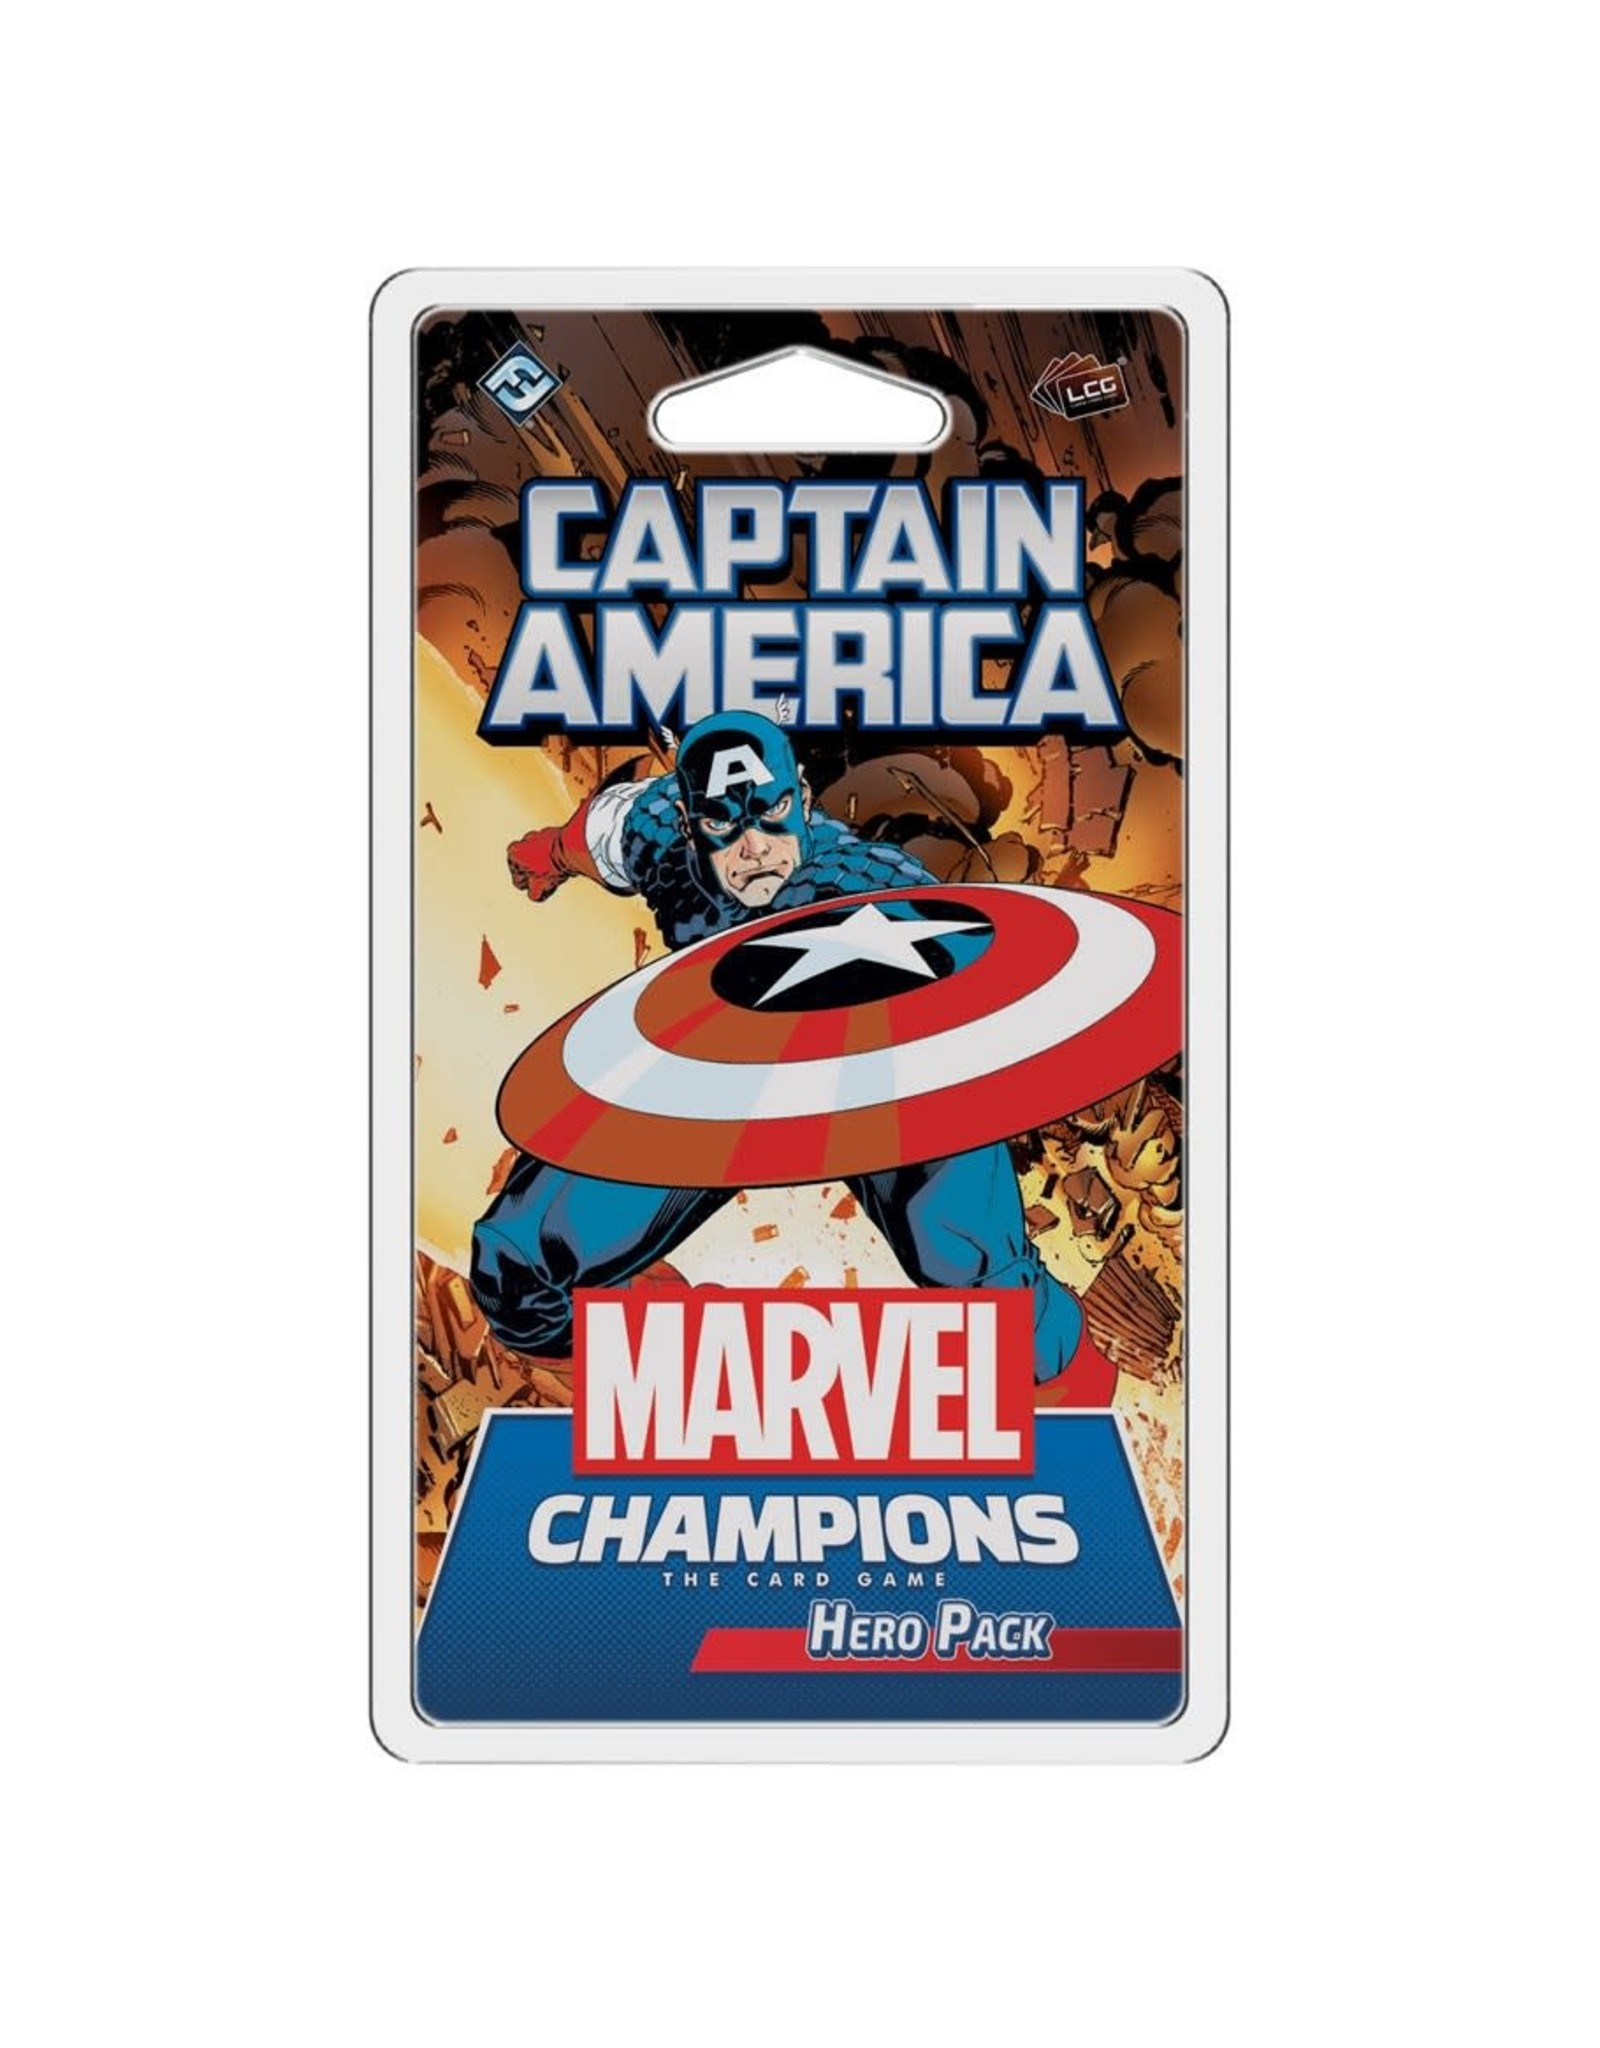 Marvel Champions - The Card Game